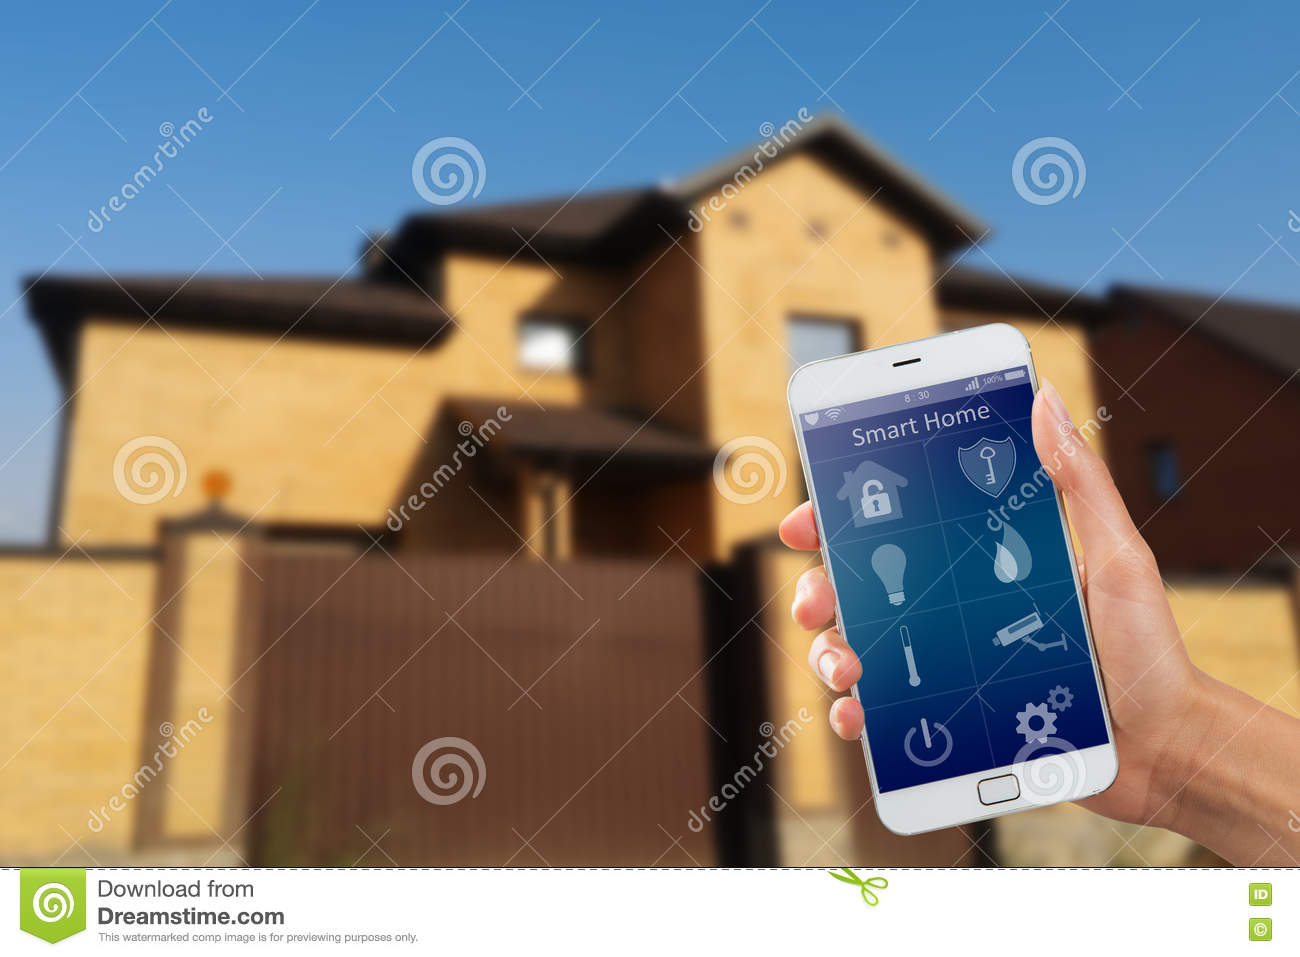 Smartphone With Home Security App In A Hand On The Building